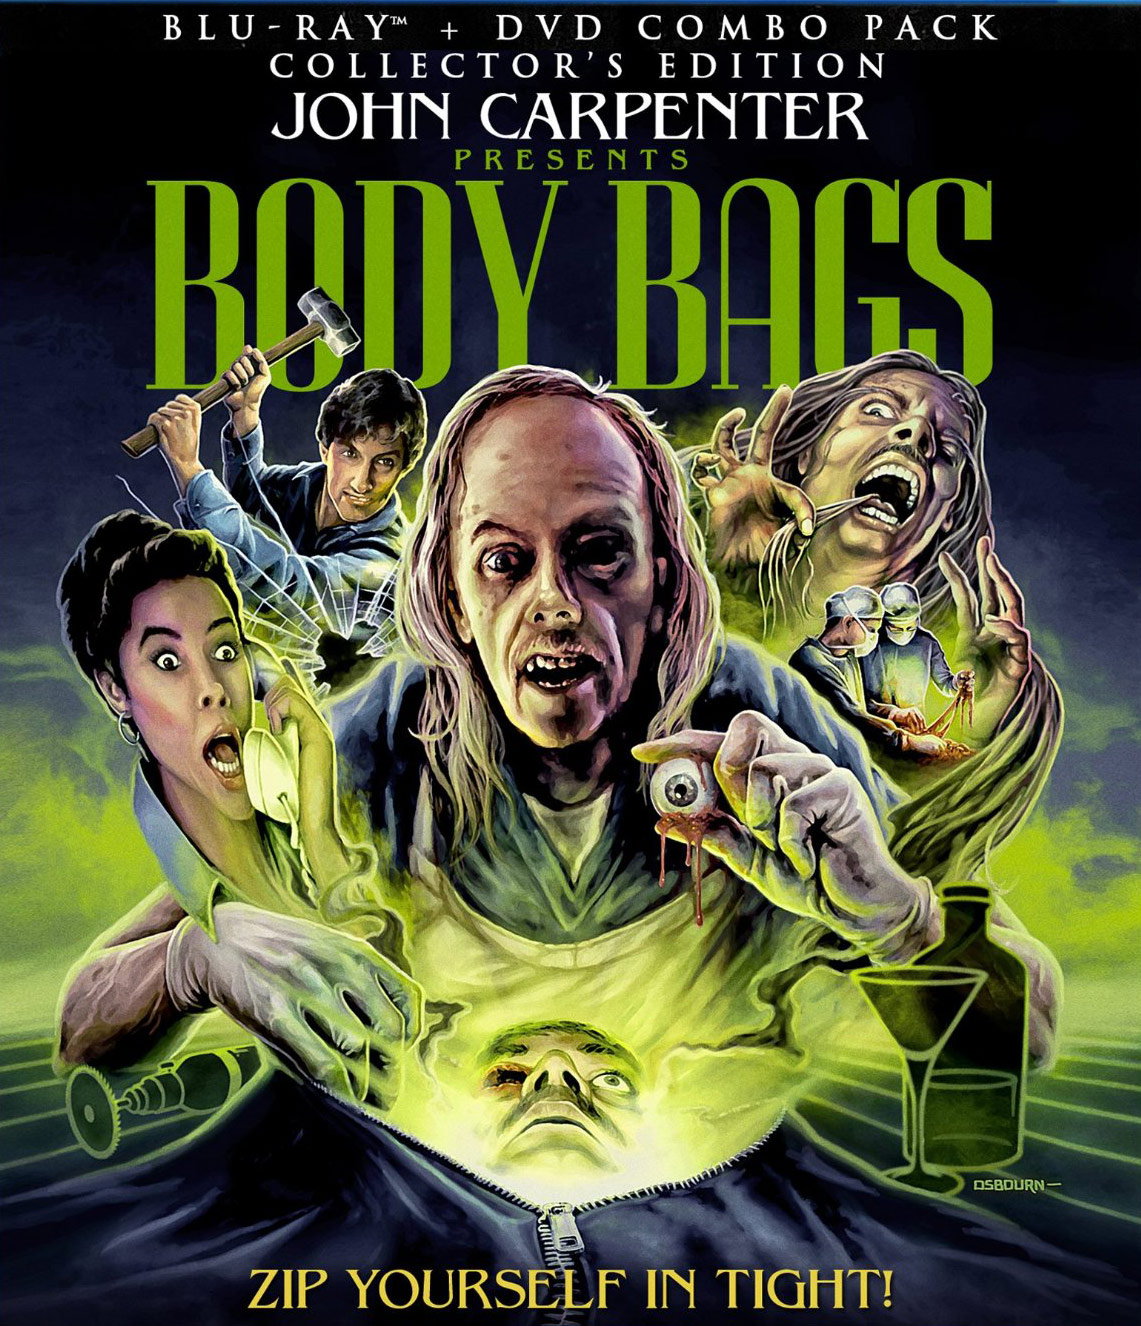 Body Bags Blu-ray cover